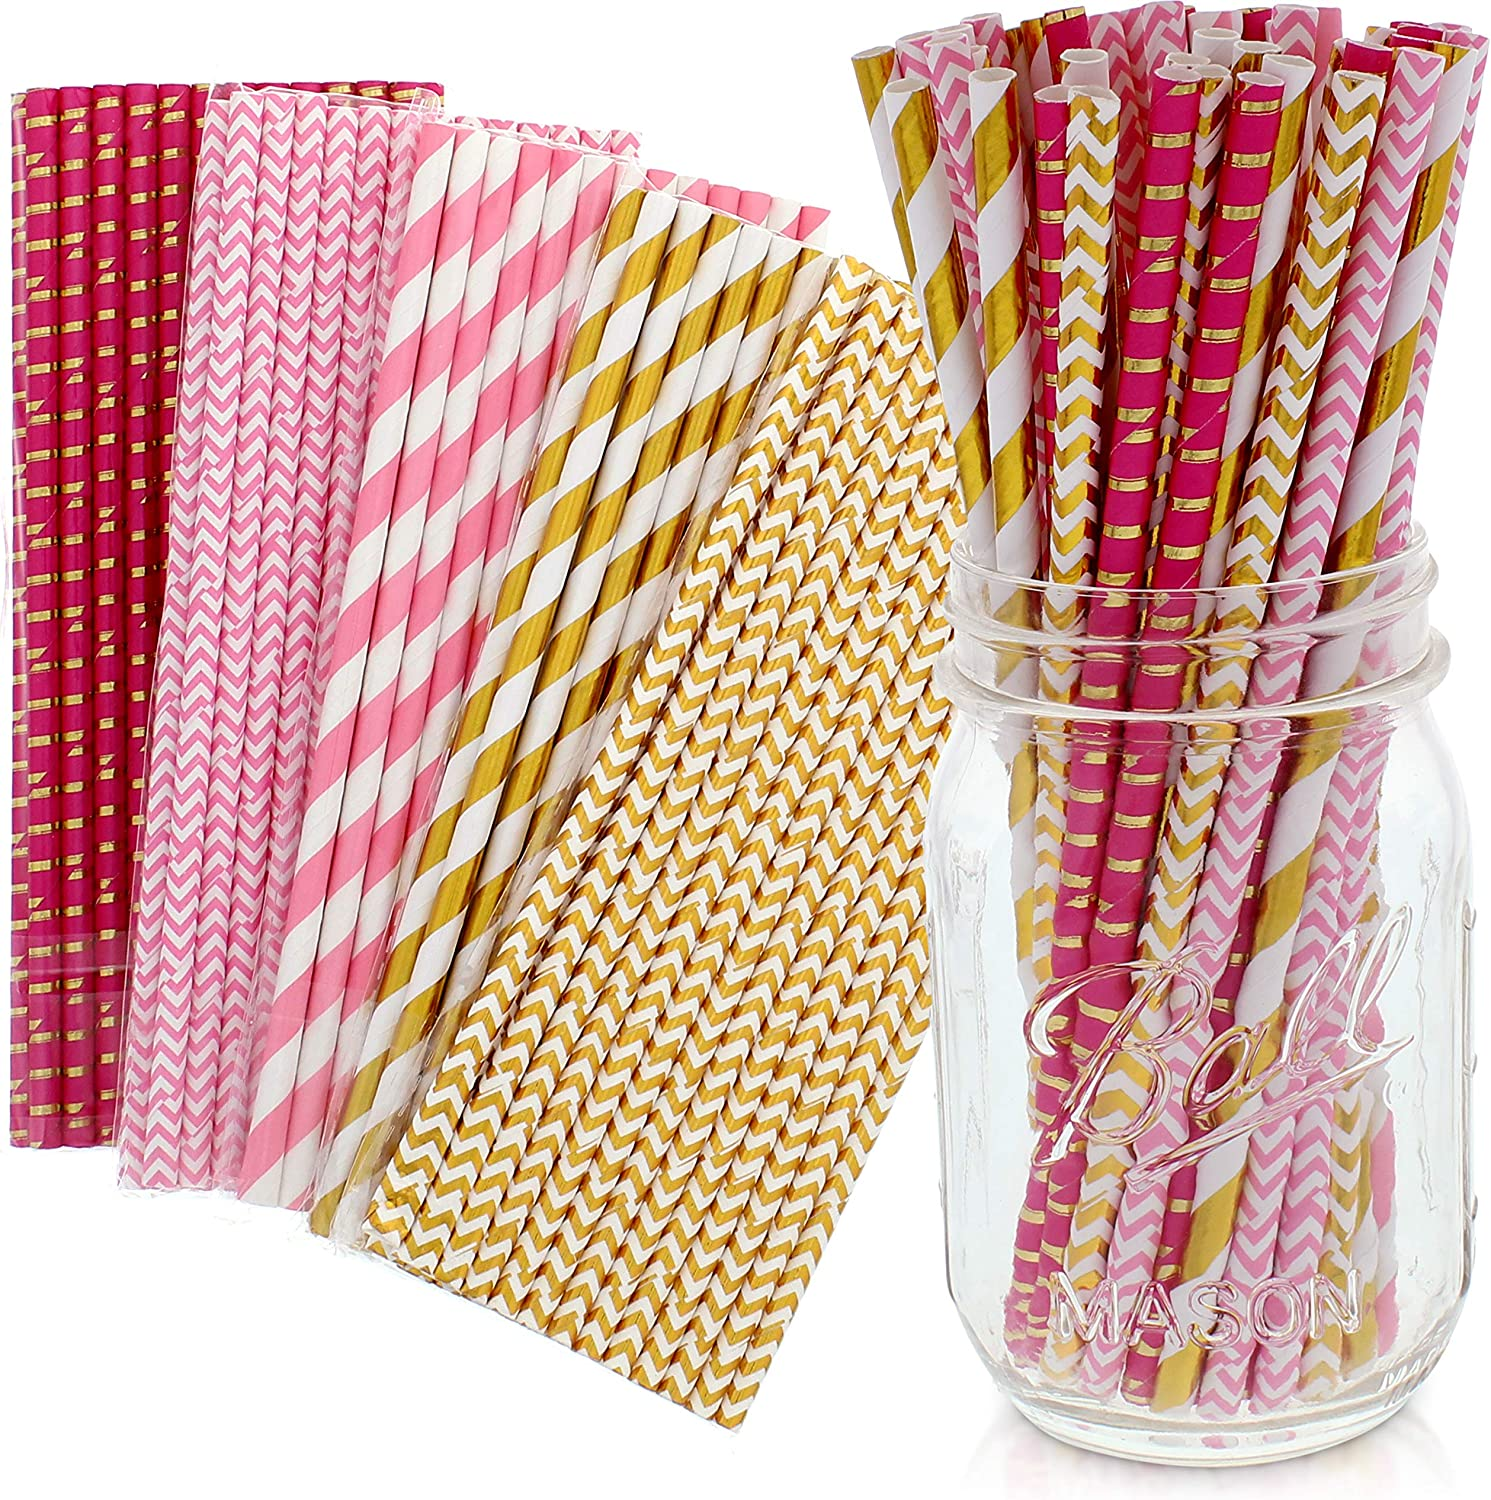 Party on Tap Pink and Gold Straws - Bulk Pack of 125 Assorted Paper Straws for Party Supplies, Birthday Parties, Baby Shower, Wedding Shower Decorations - 7.75 Inches